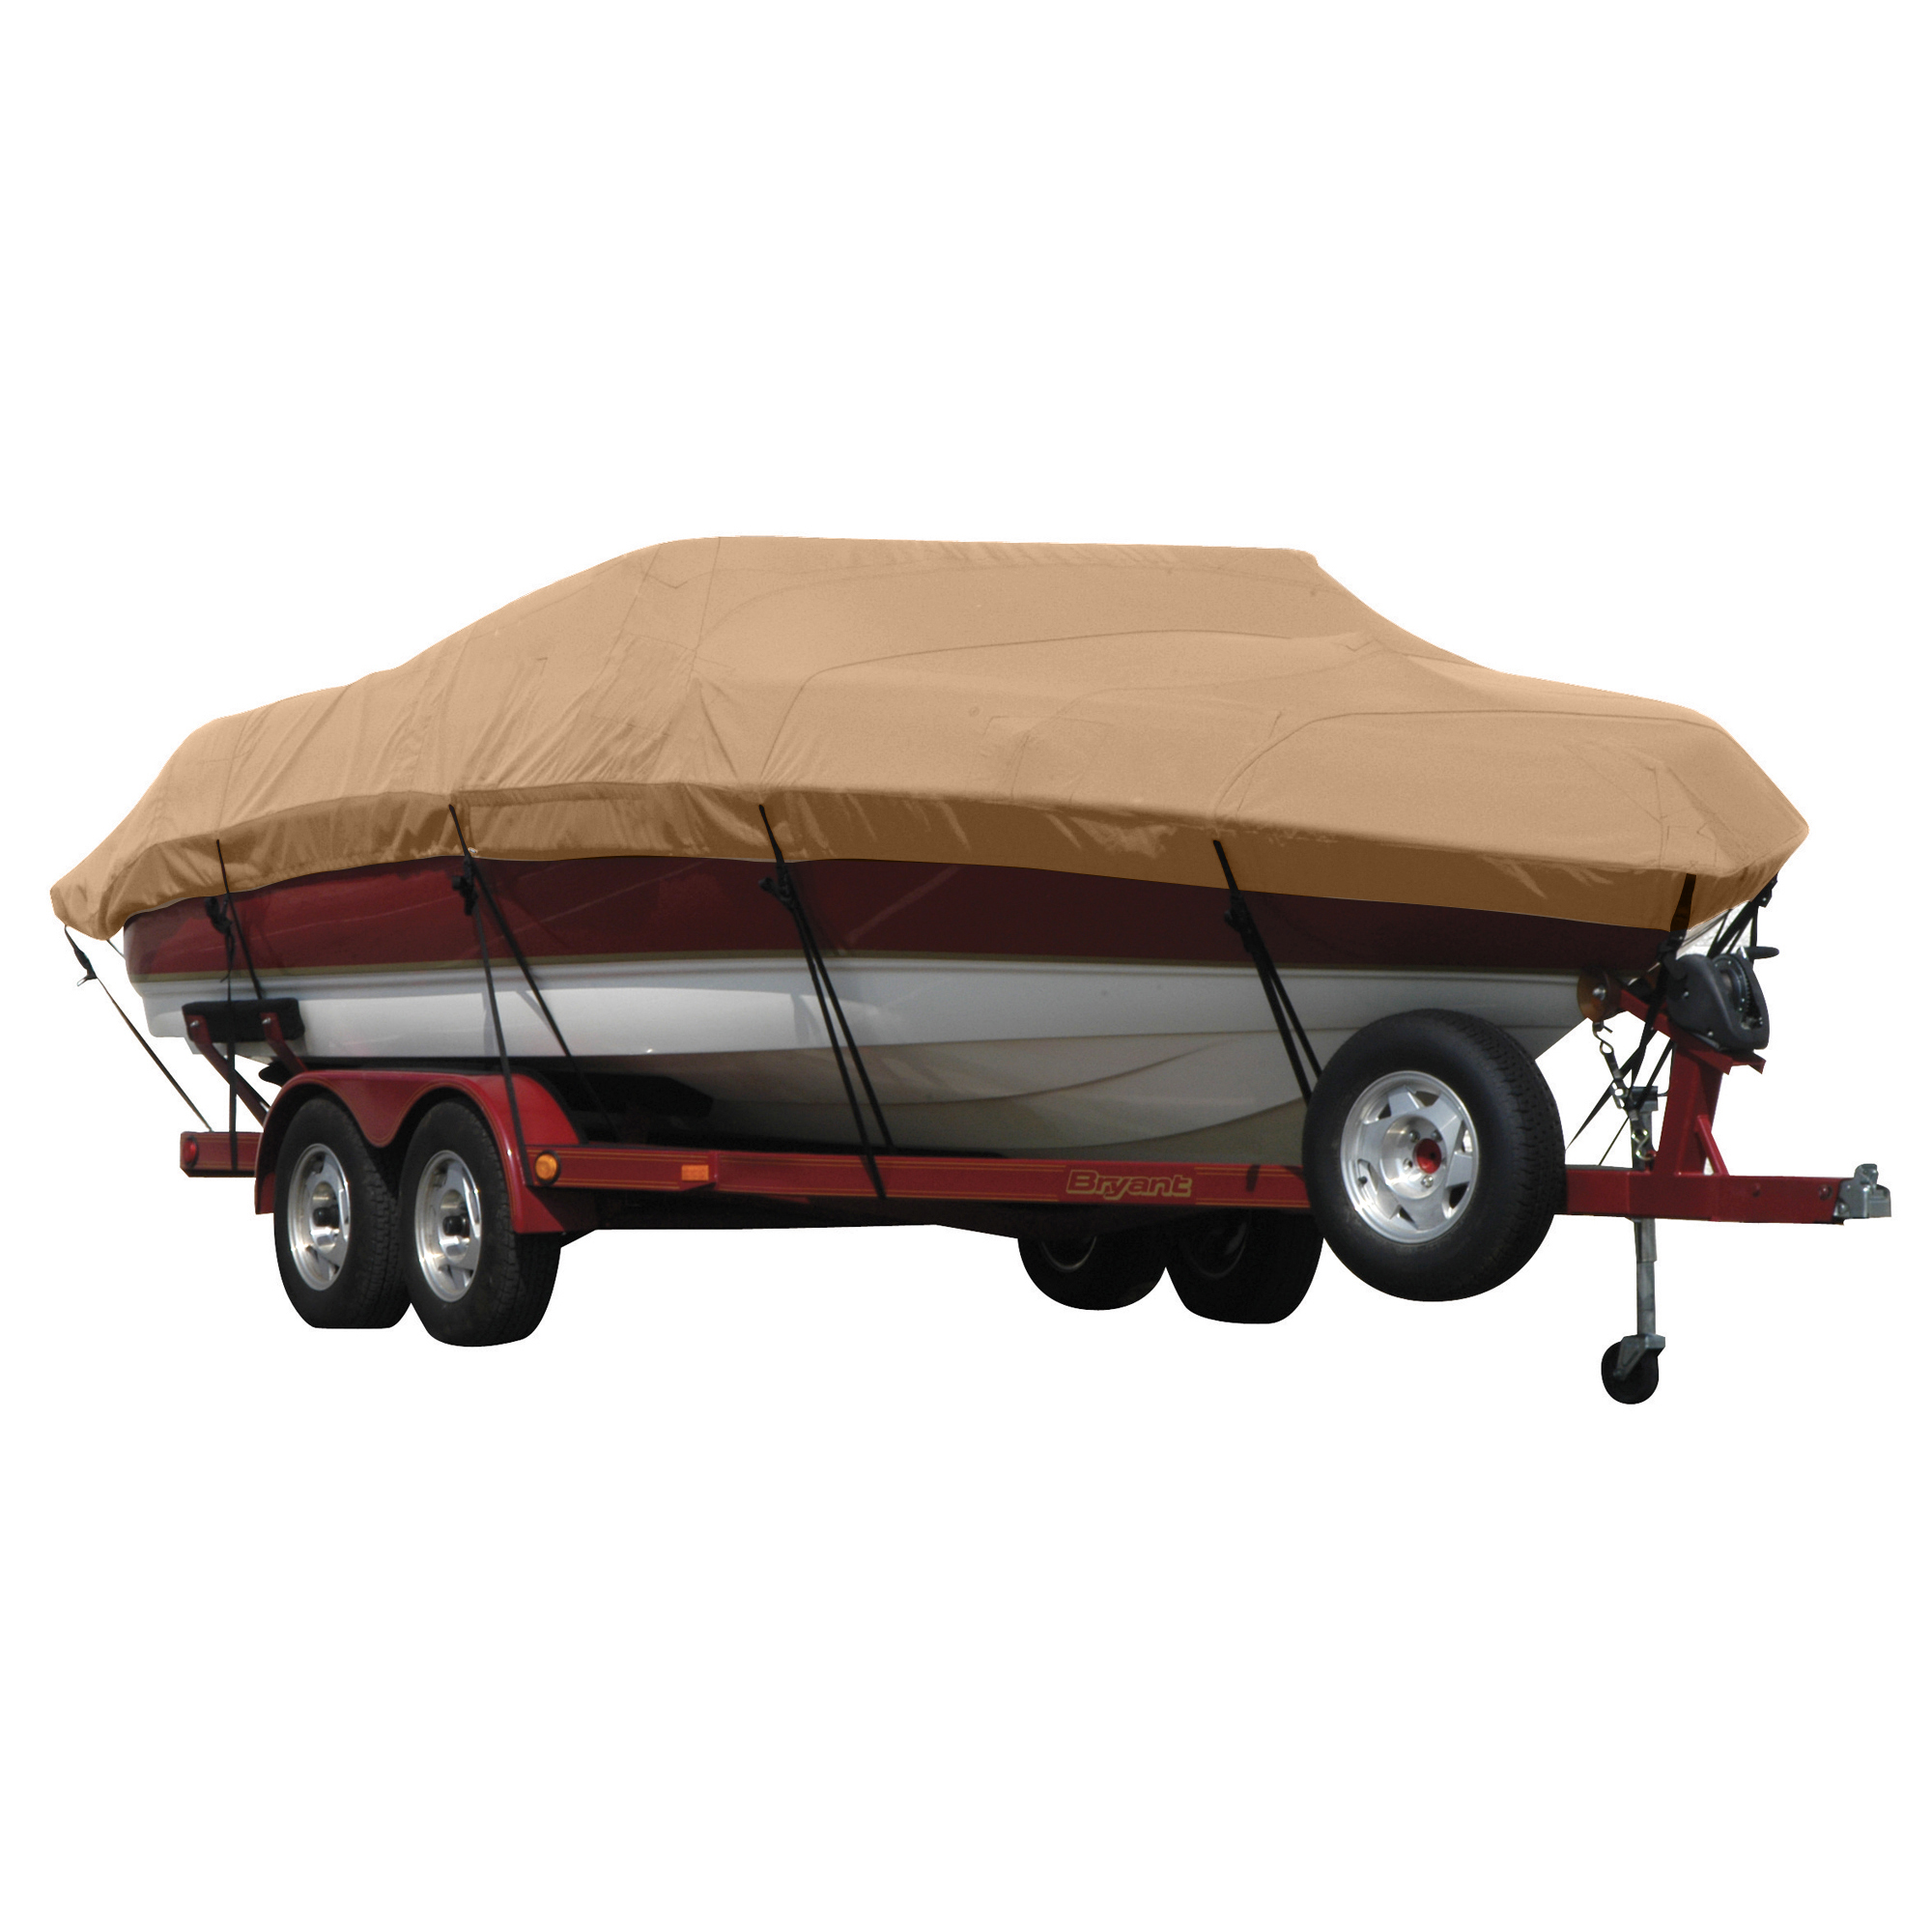 Exact Fit Covermate Sunbrella Boat Cover for Princecraft Super Pro 176 Super Pro 176 Fish N Promenade W/Ski Rope Guard O/B. Beige thumbnail